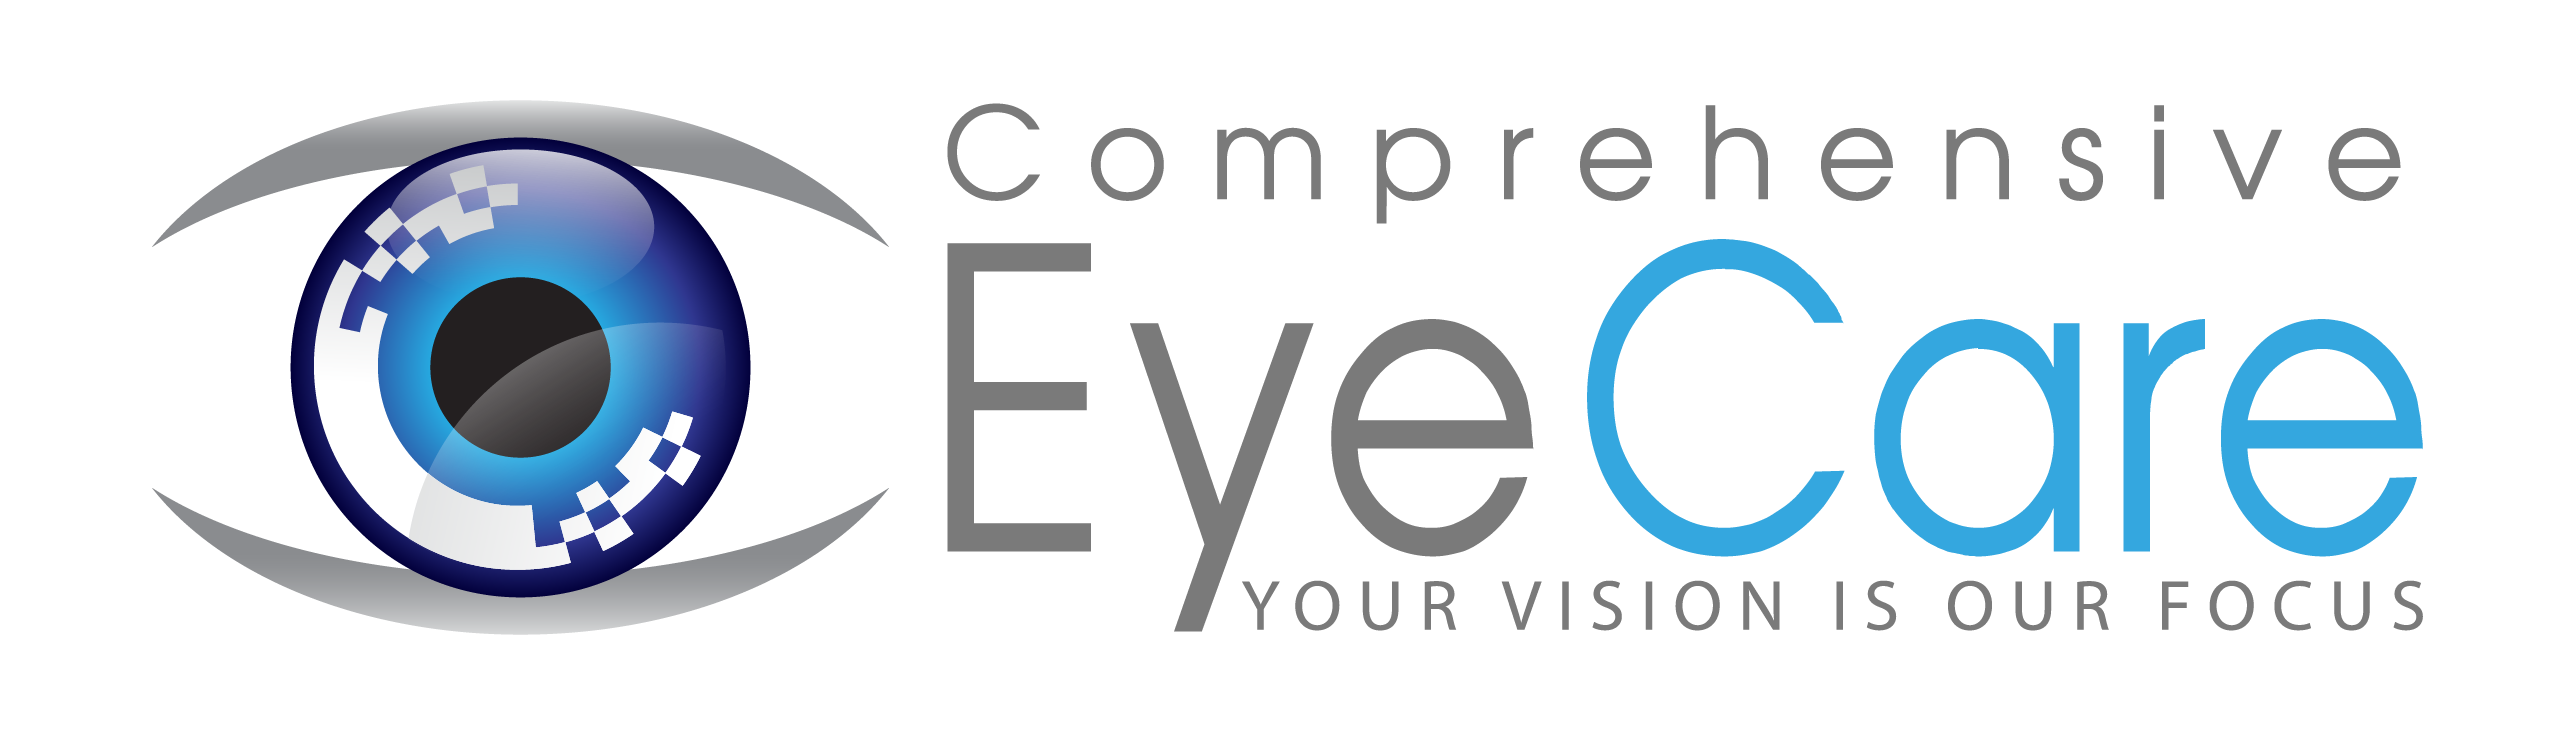 Colonial heights optometrist comprehensive. Future clipart corporate vision